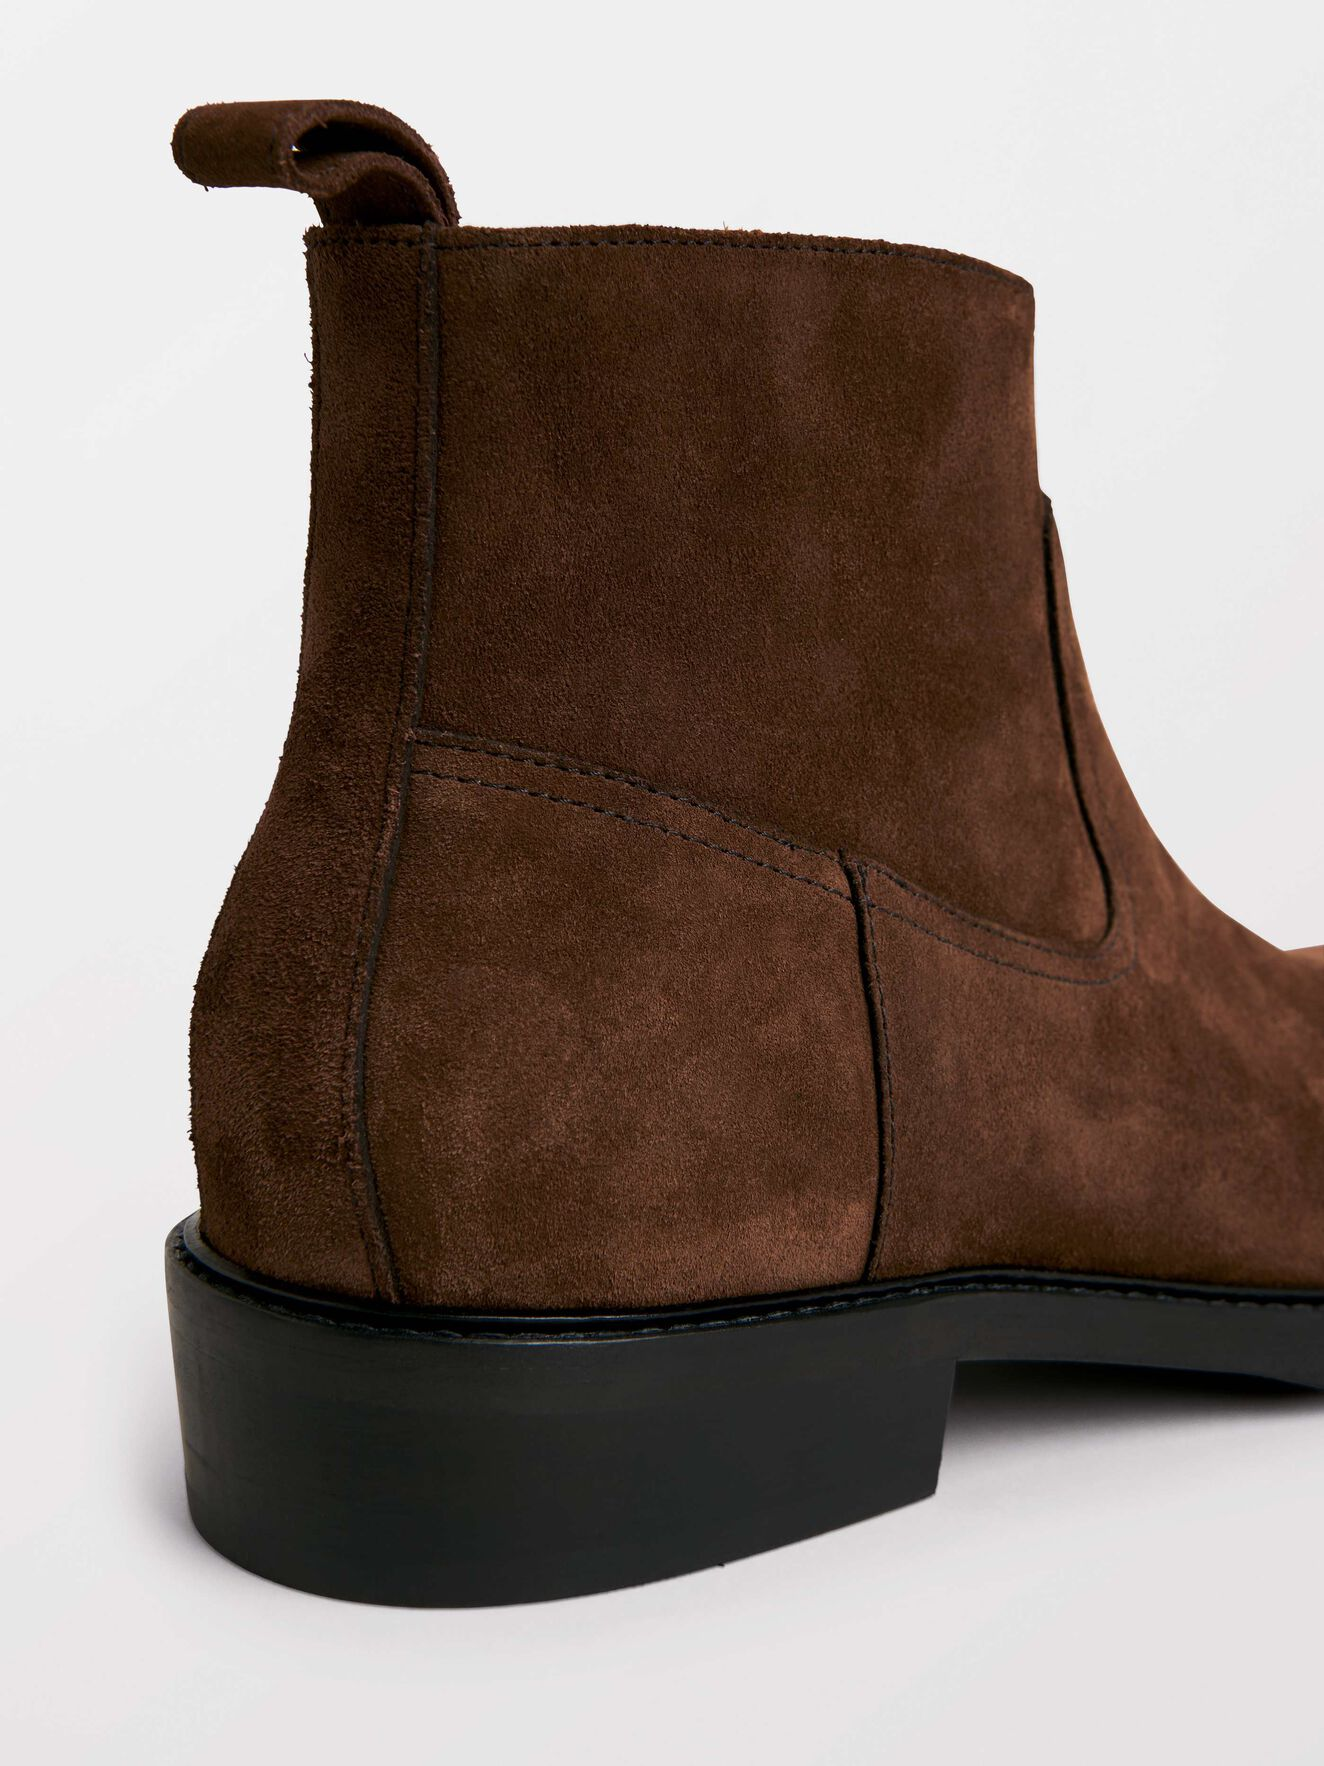 Barant S Boots in Dark Brown from Tiger of Sweden